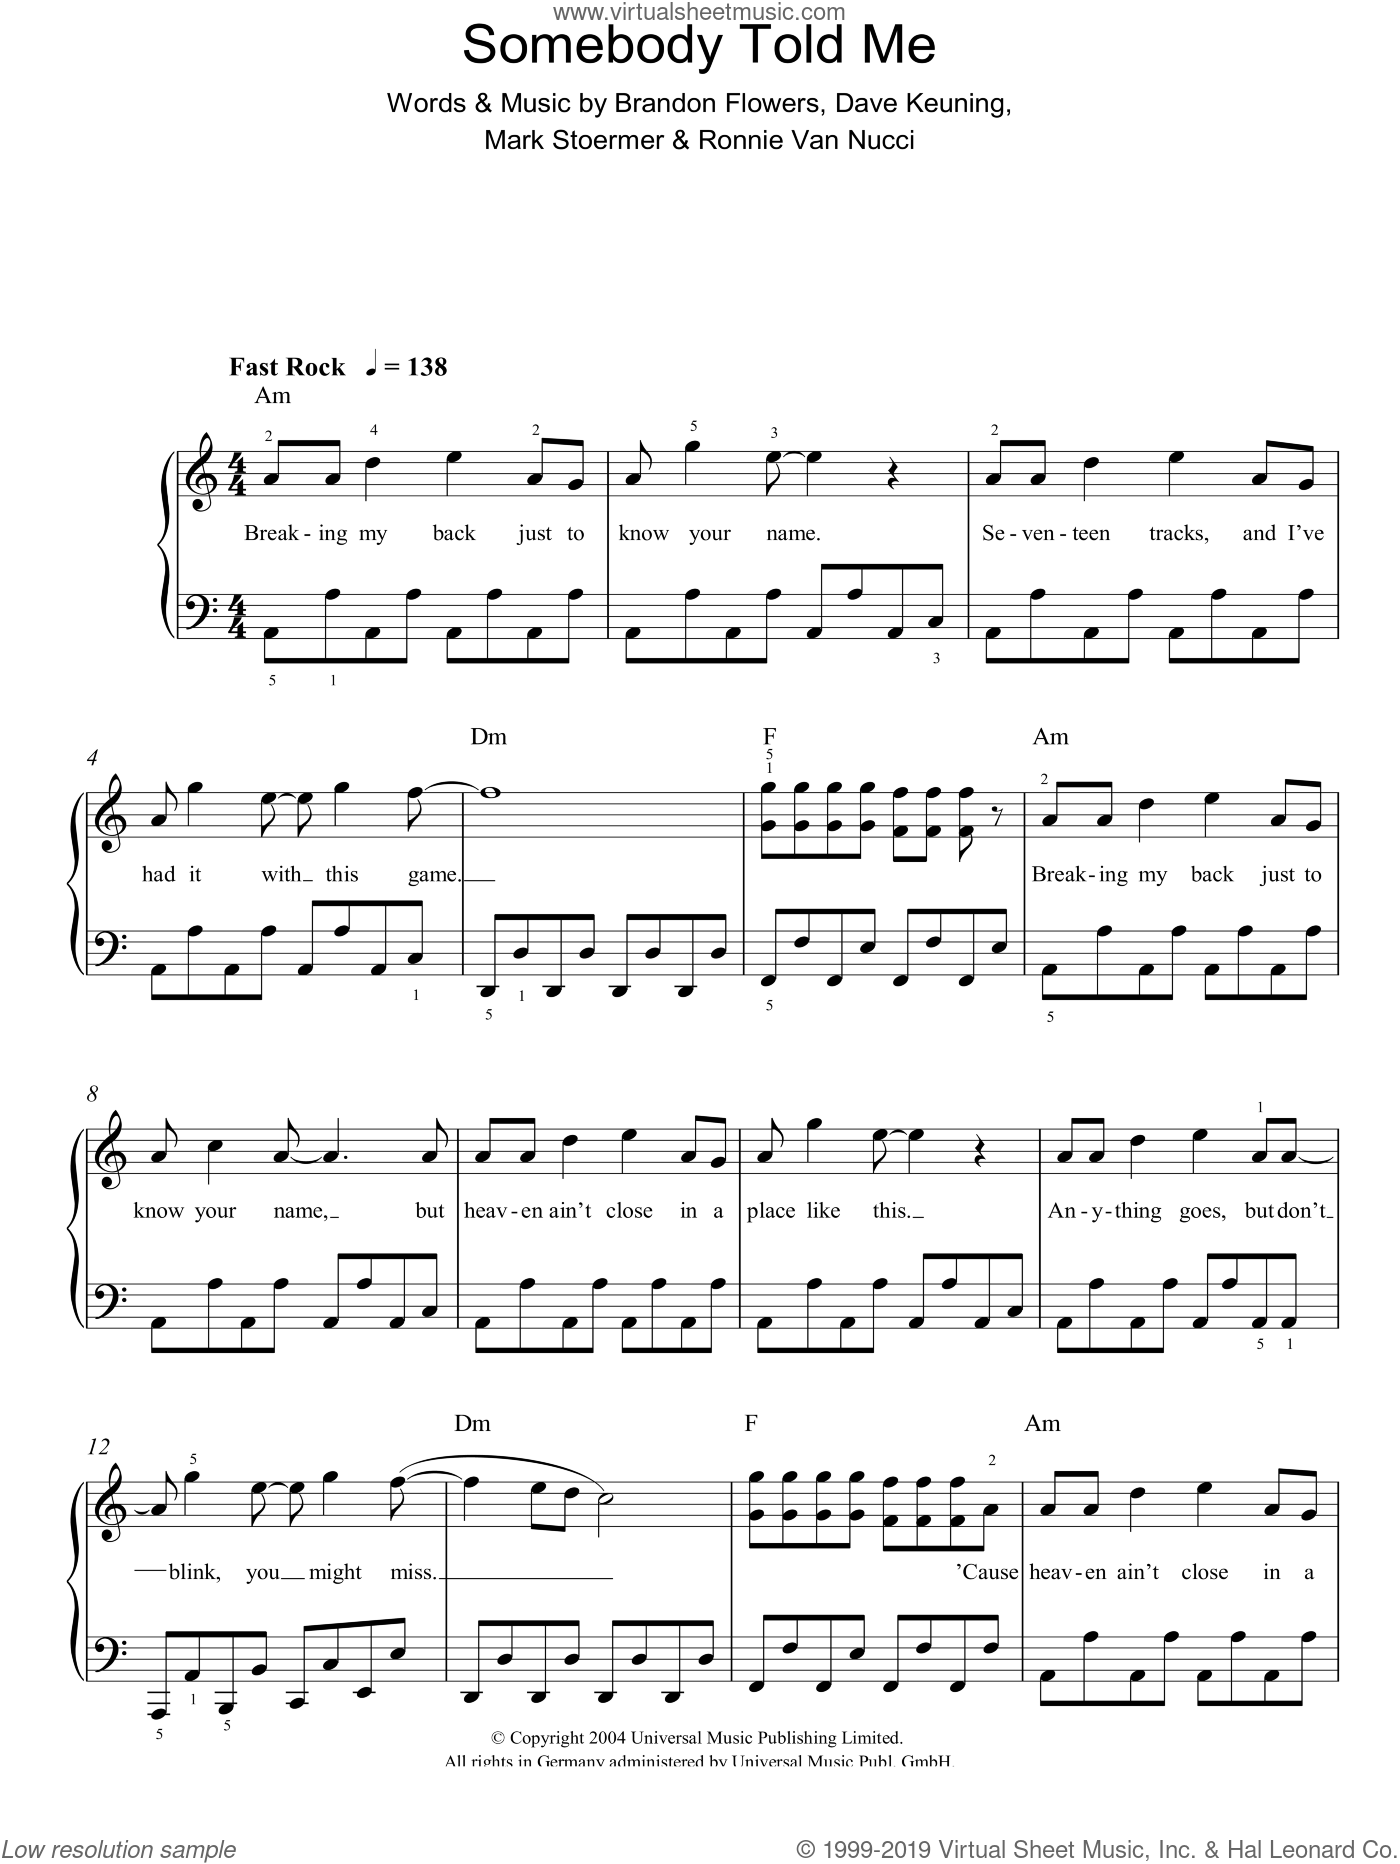 Somebody Told Me sheet music for piano solo (chords) by Brandon Flowers